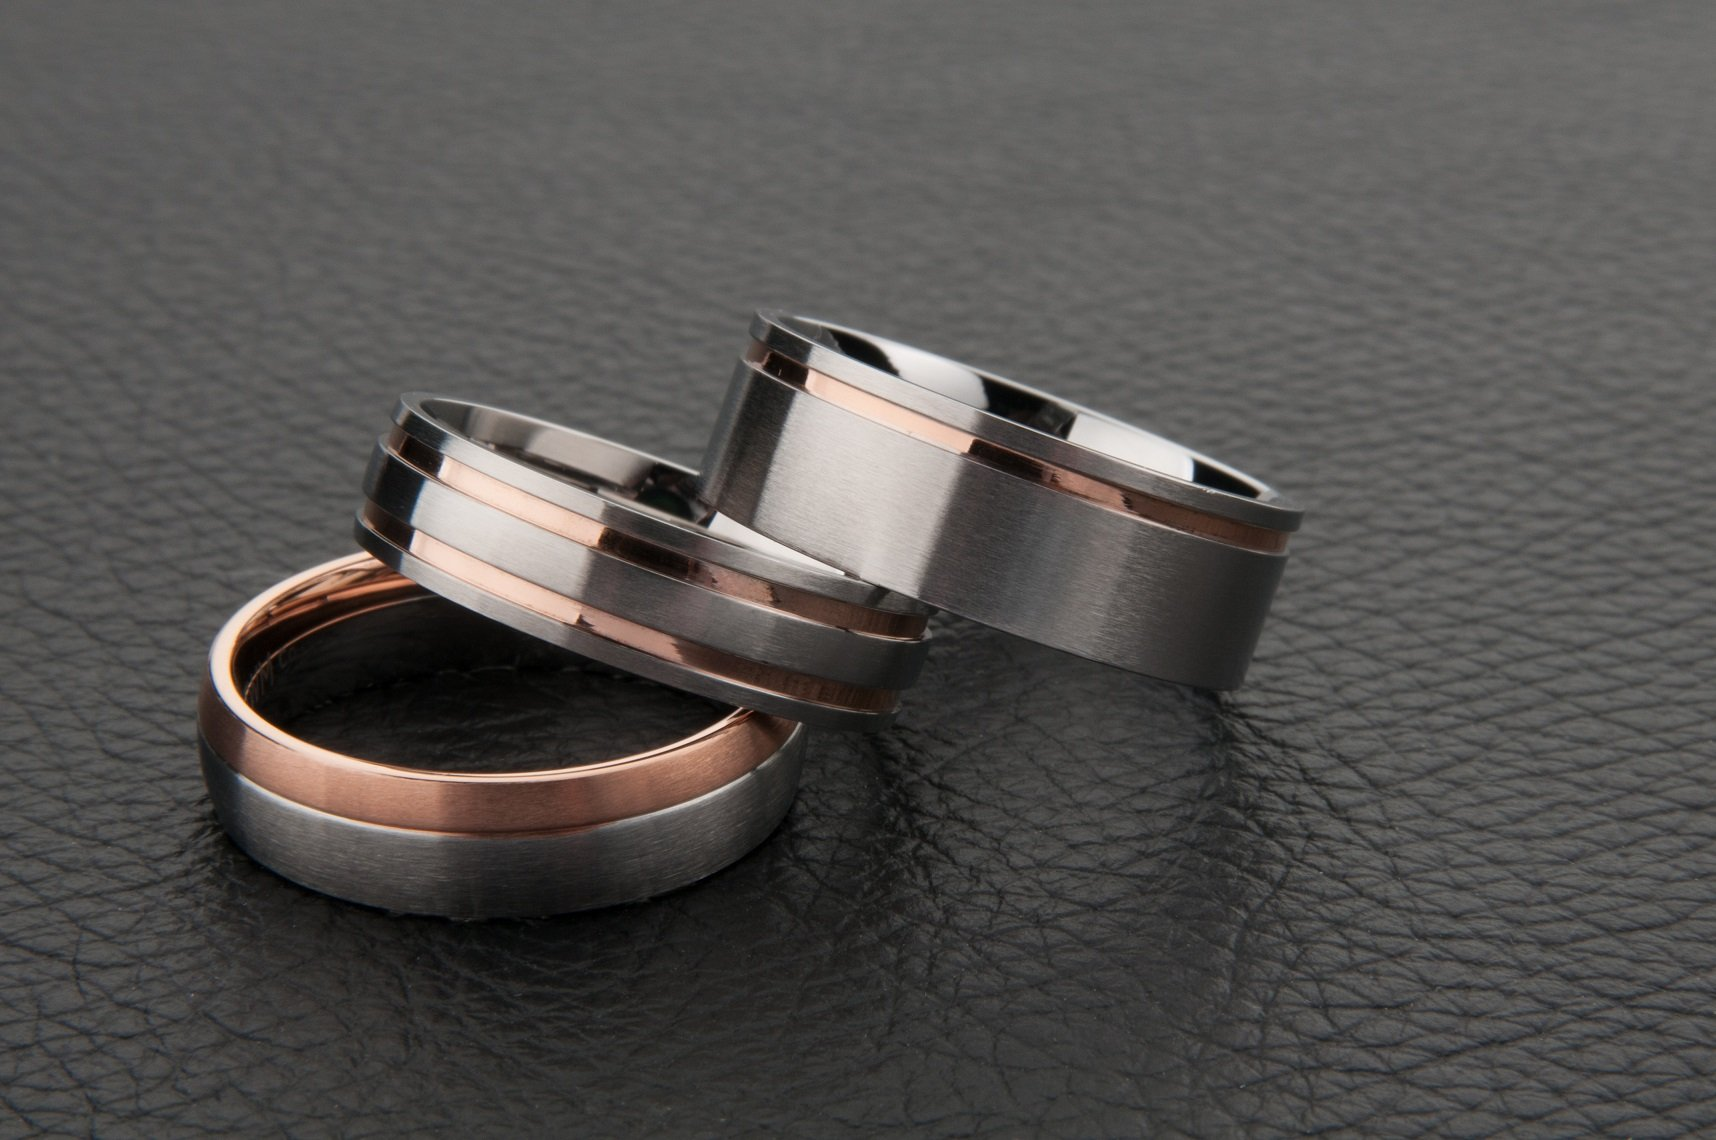 ee8132bf73a68 White Gold with Dual Rose Gold Striped Wedding Ring